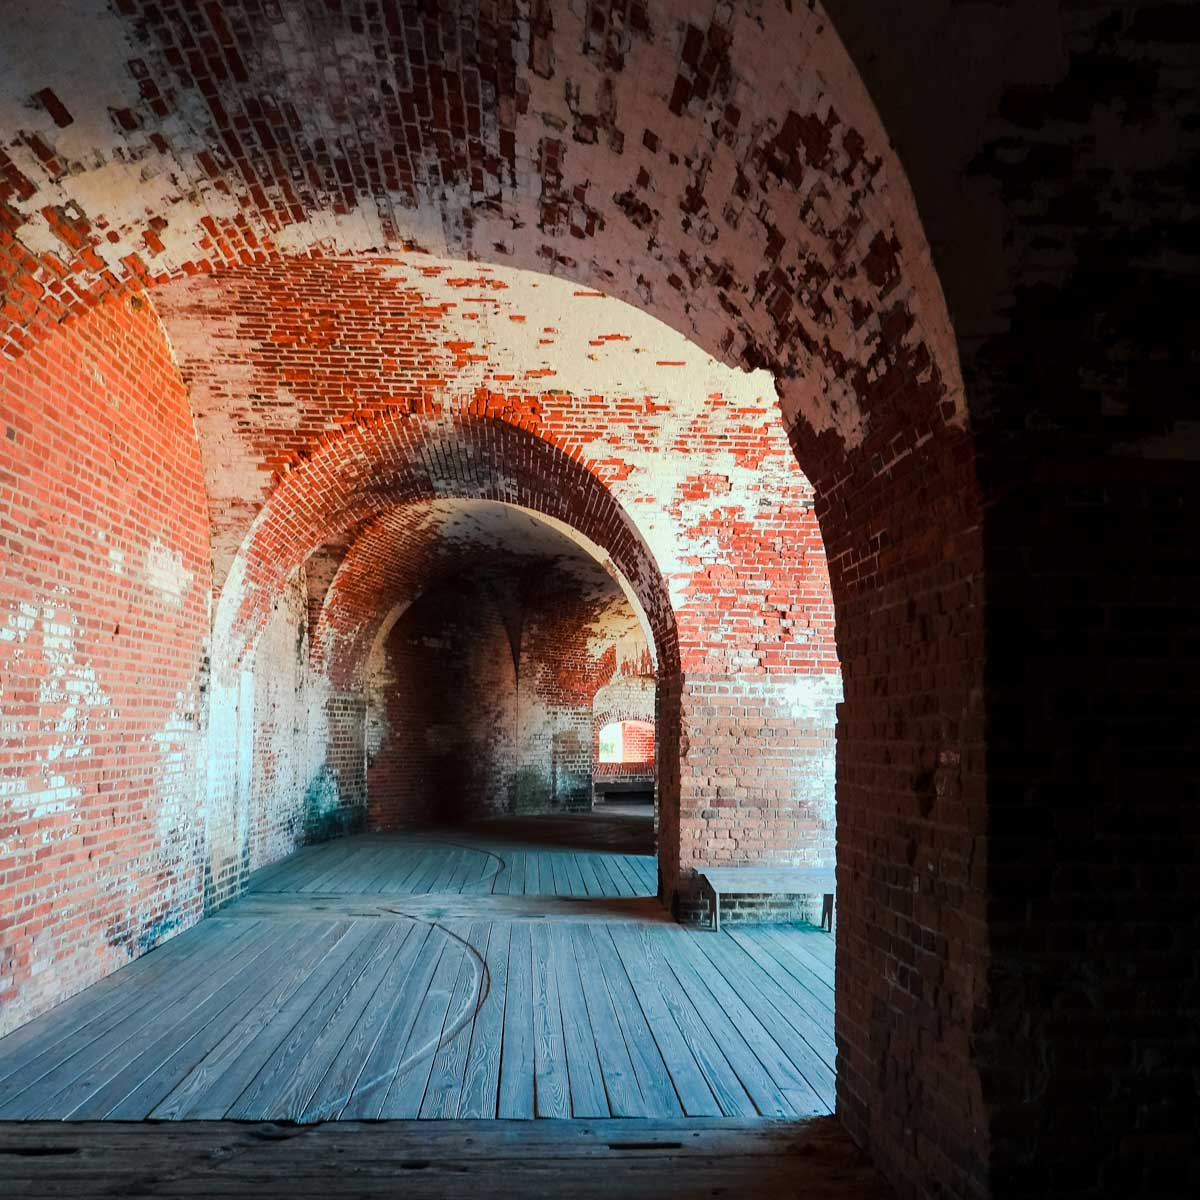 Tunnels inside Fort Pulaski, one of the many cool things to do in Savannah, Georgia